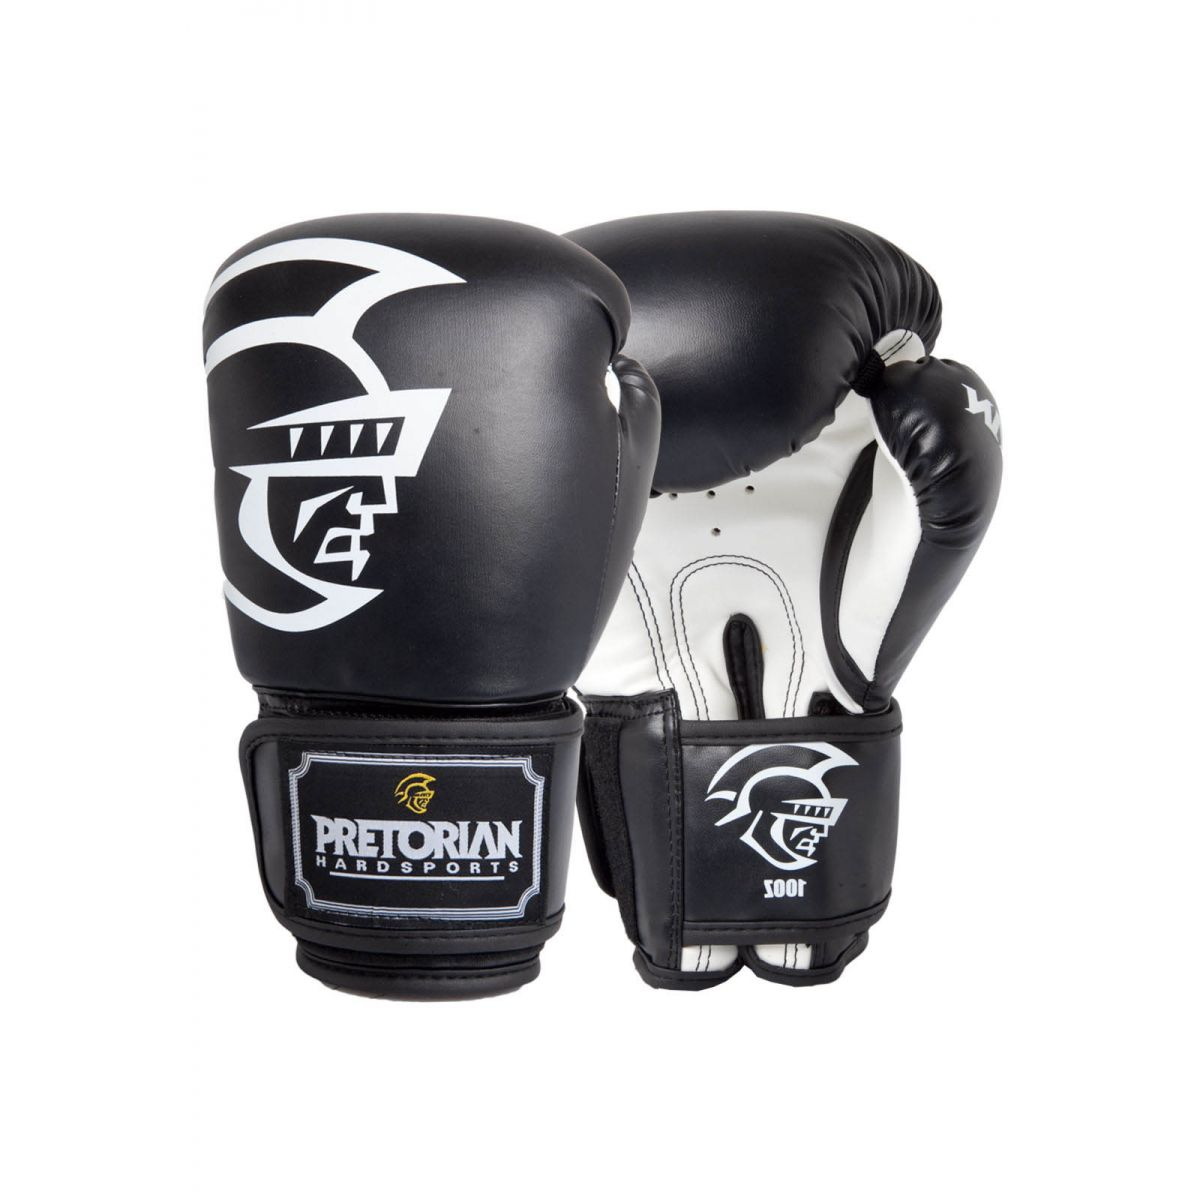 Luvas Boxe / Muay Thai - Training Series - Preto - Pretorian - 10/12/14/16 OZ .  - Loja do Competidor